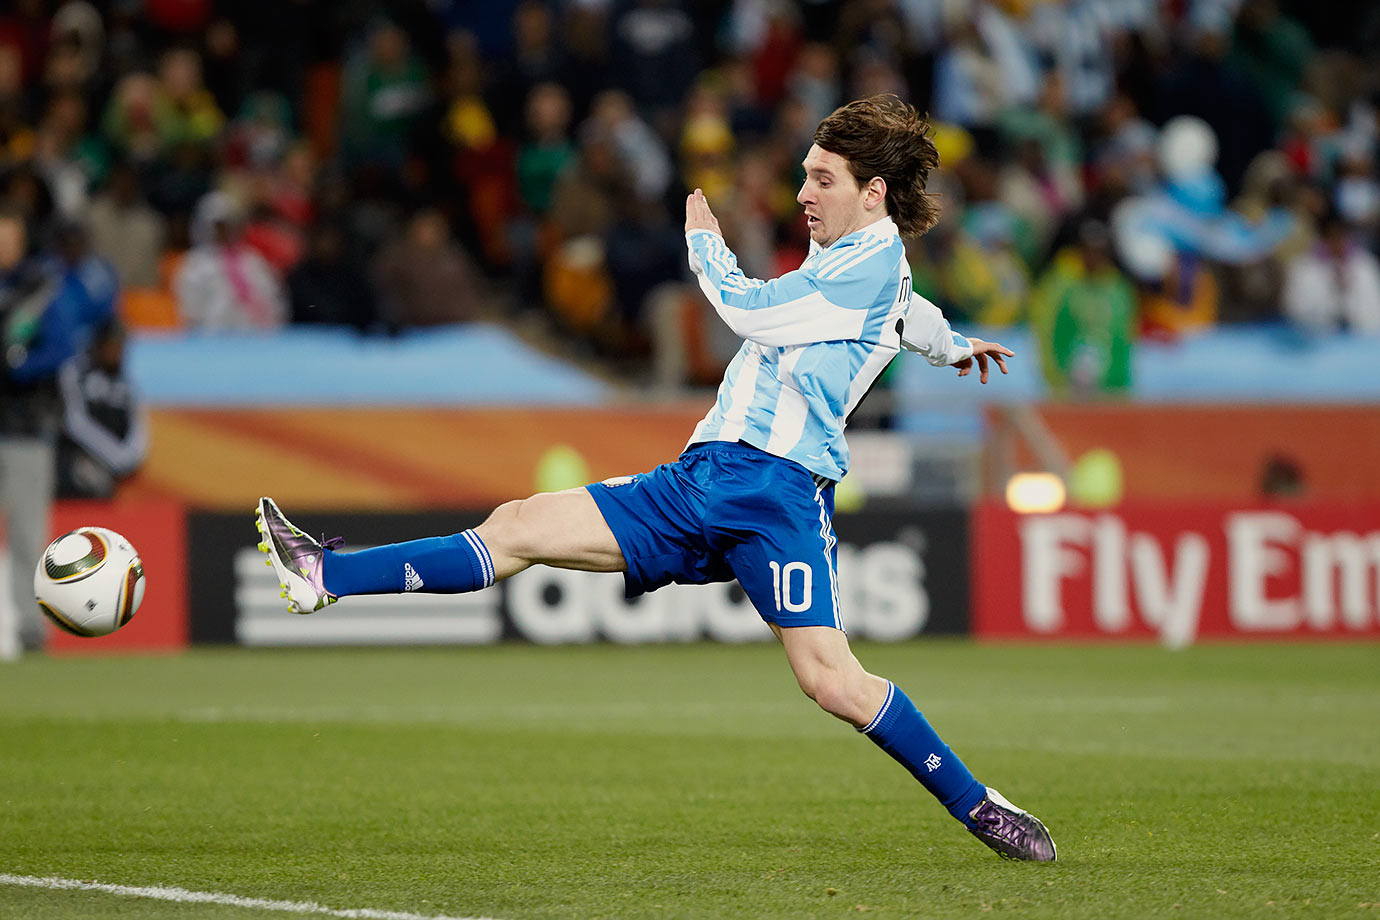 Argentina's Lionel Messi plays the ball during the FIFA World Cup Round of 16 match against Mexico on June 27, 2010 at Soccer City Stadium in Johannesburg, South Africa.